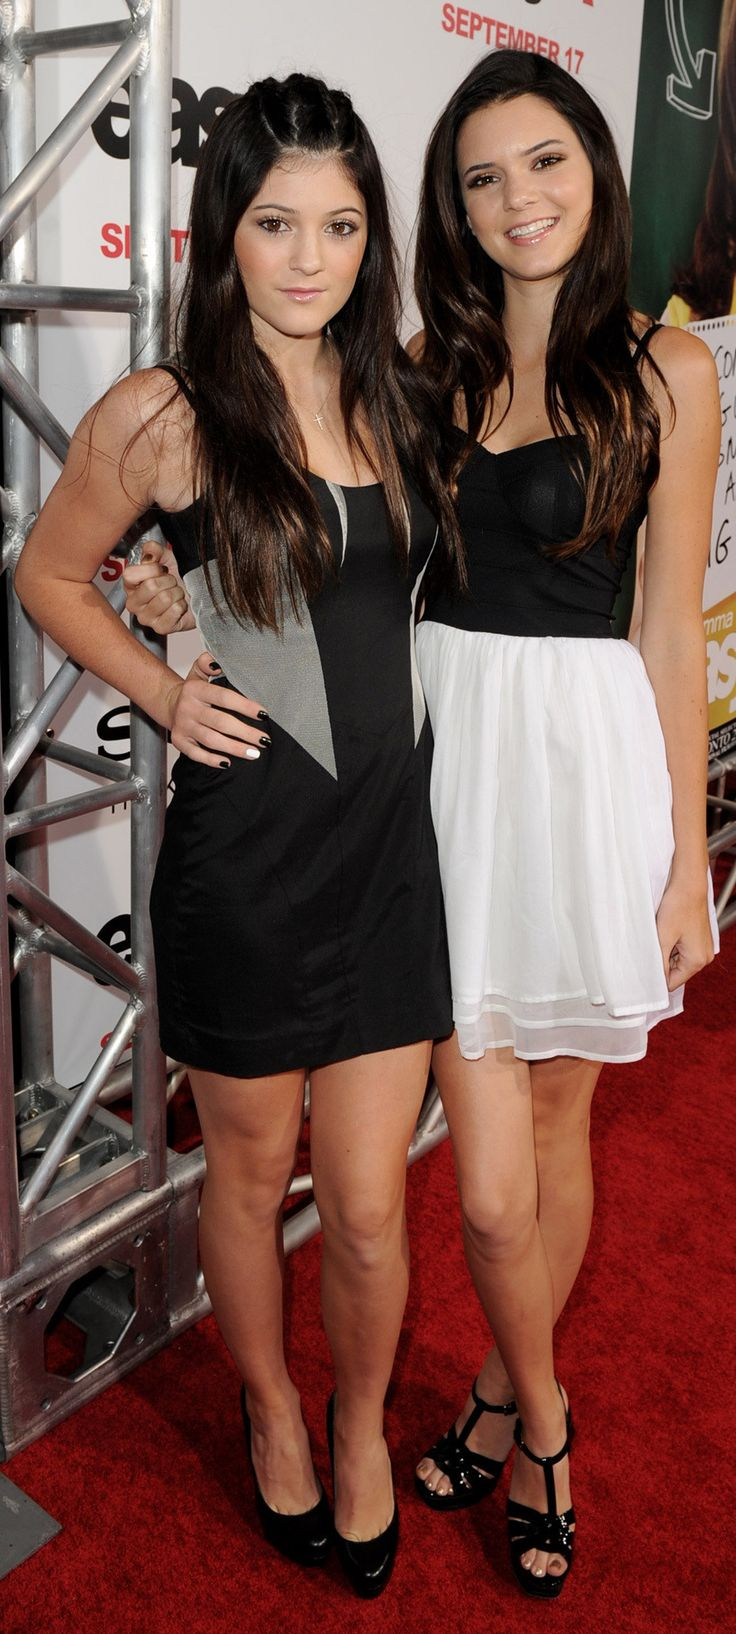 Kendall & Kylie Jenner...Kourtney, Kim and Khloe watch out because the Jenners are taking over! :)